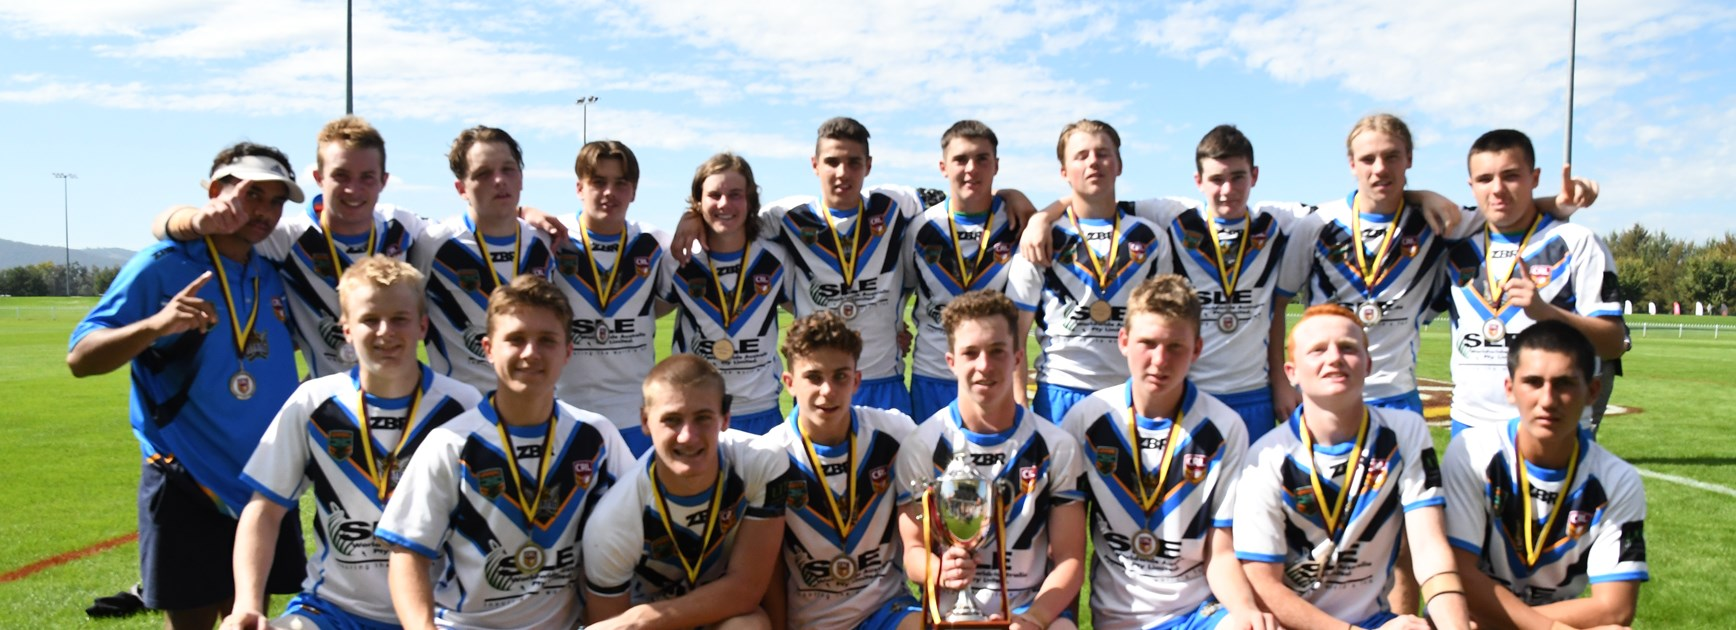 2020 PREVIEW | Andrew Johns Cup